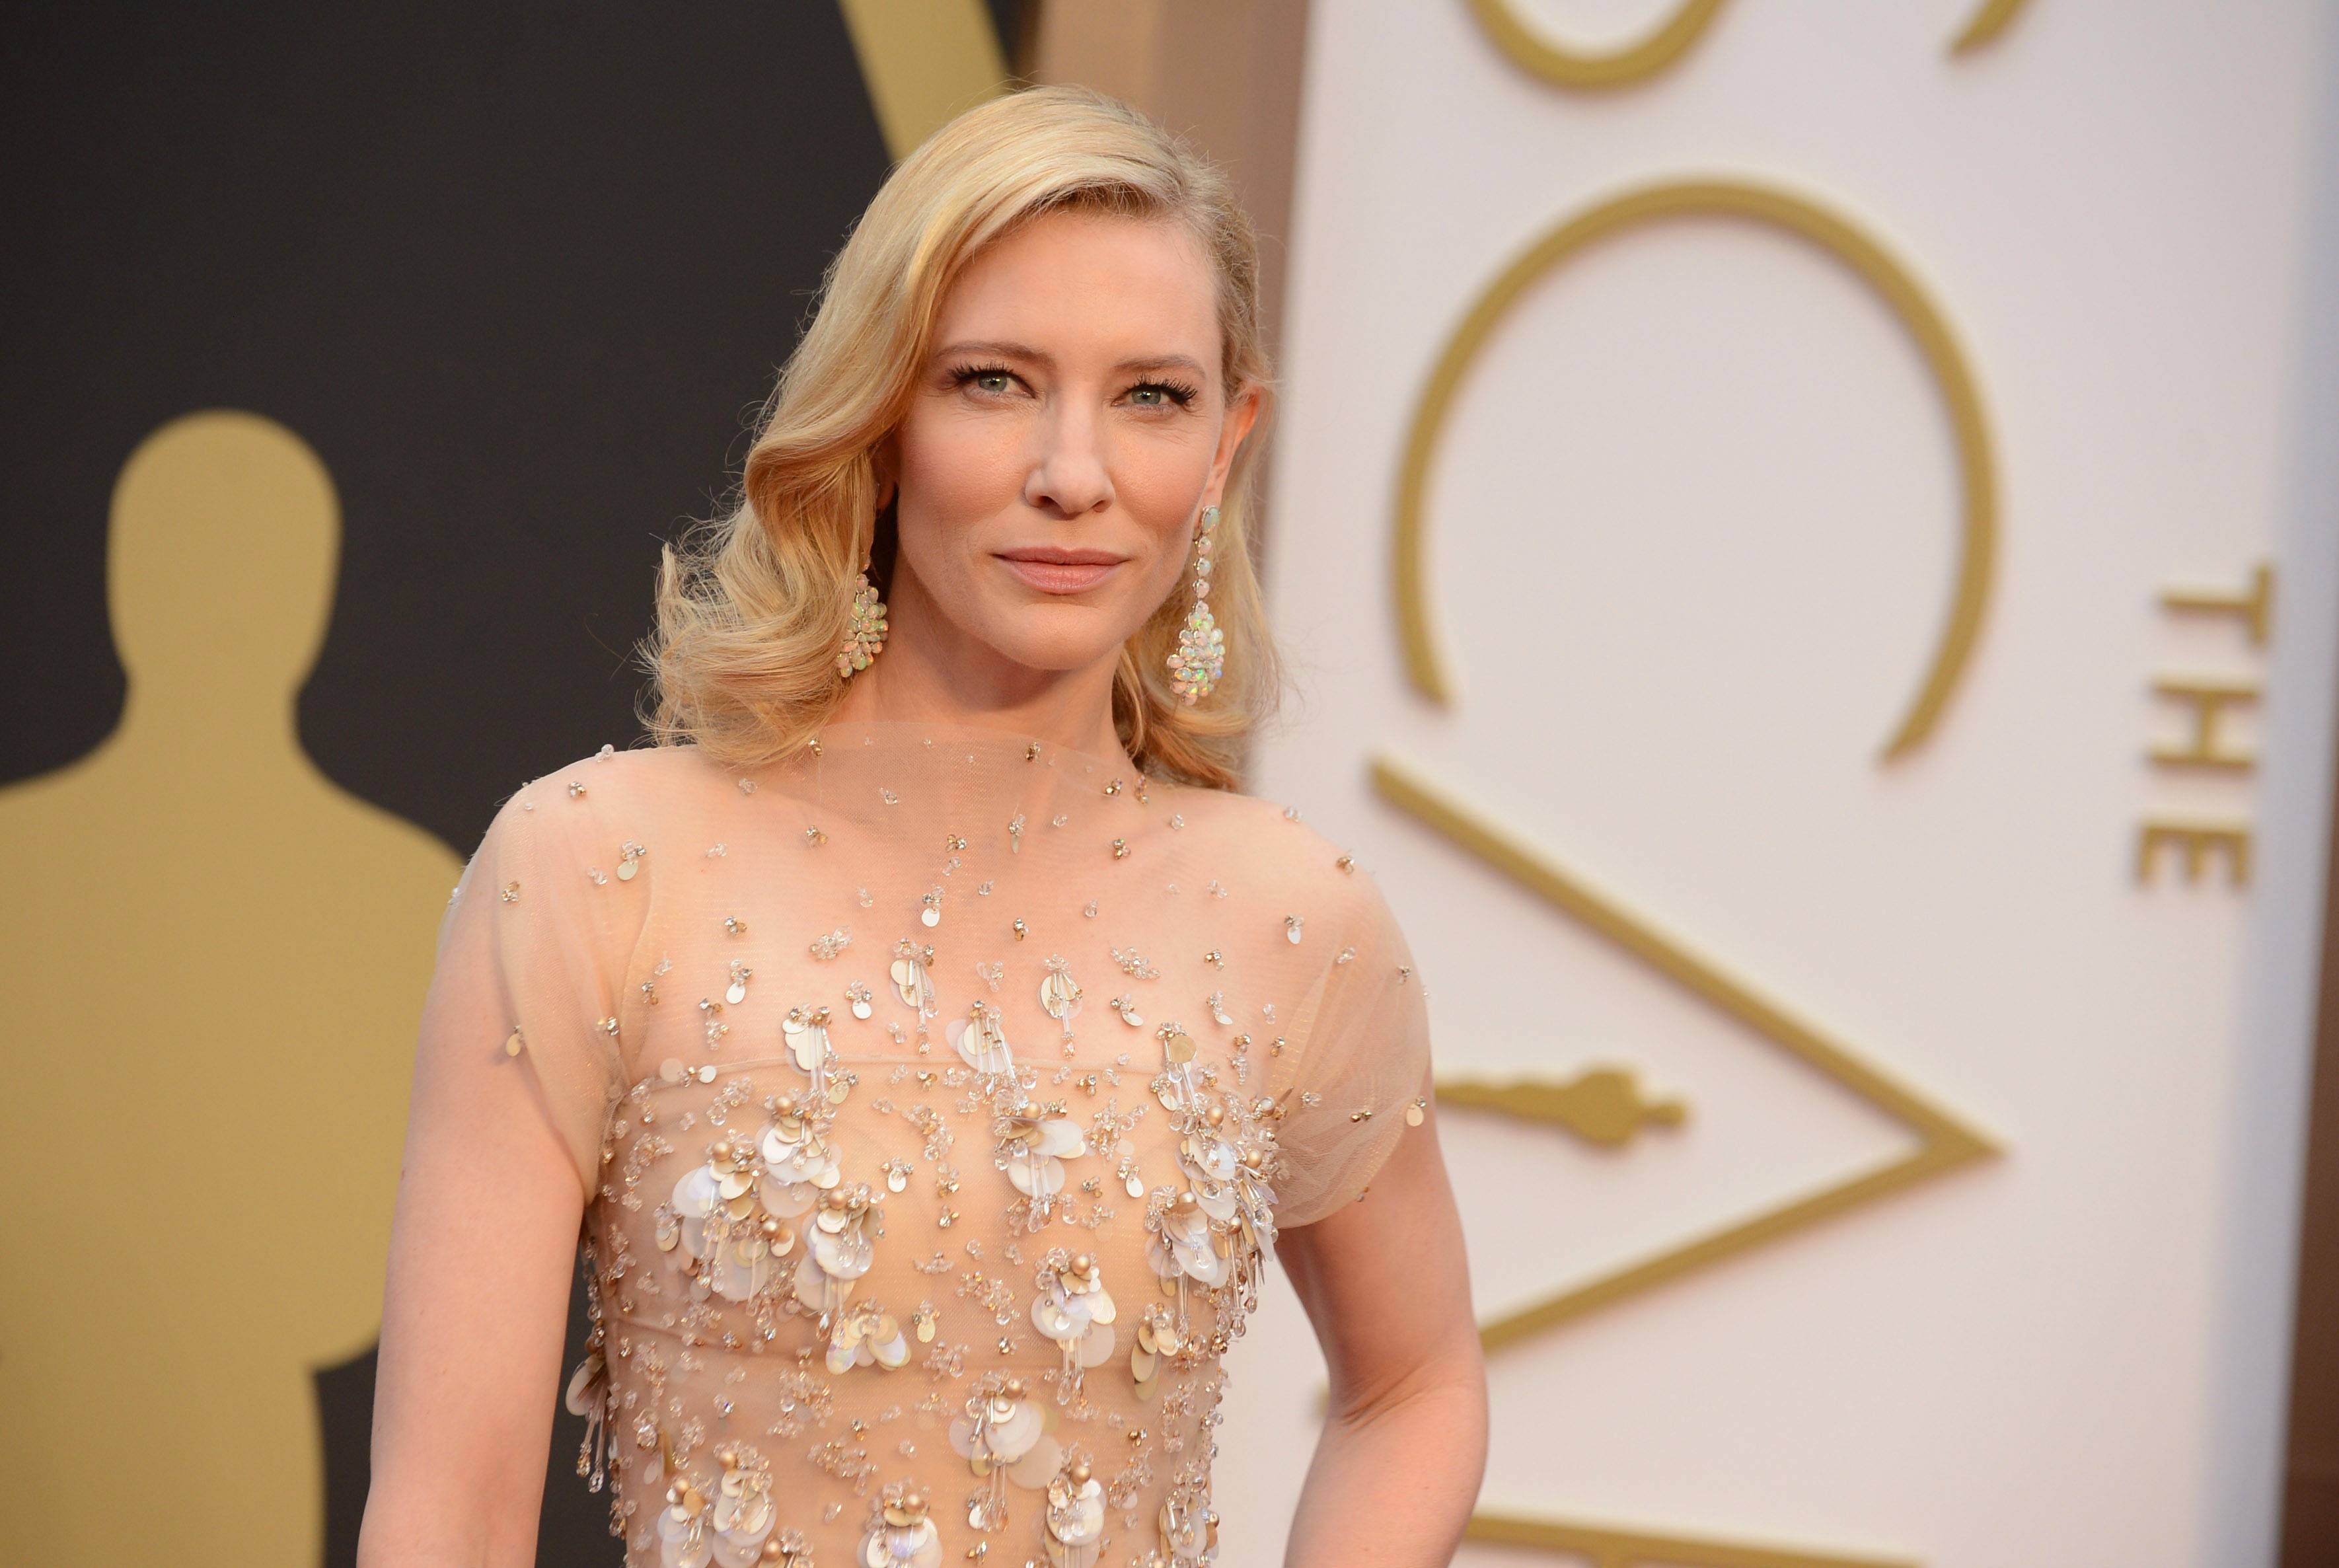 Cate Blanchett went for more muted colors this year.